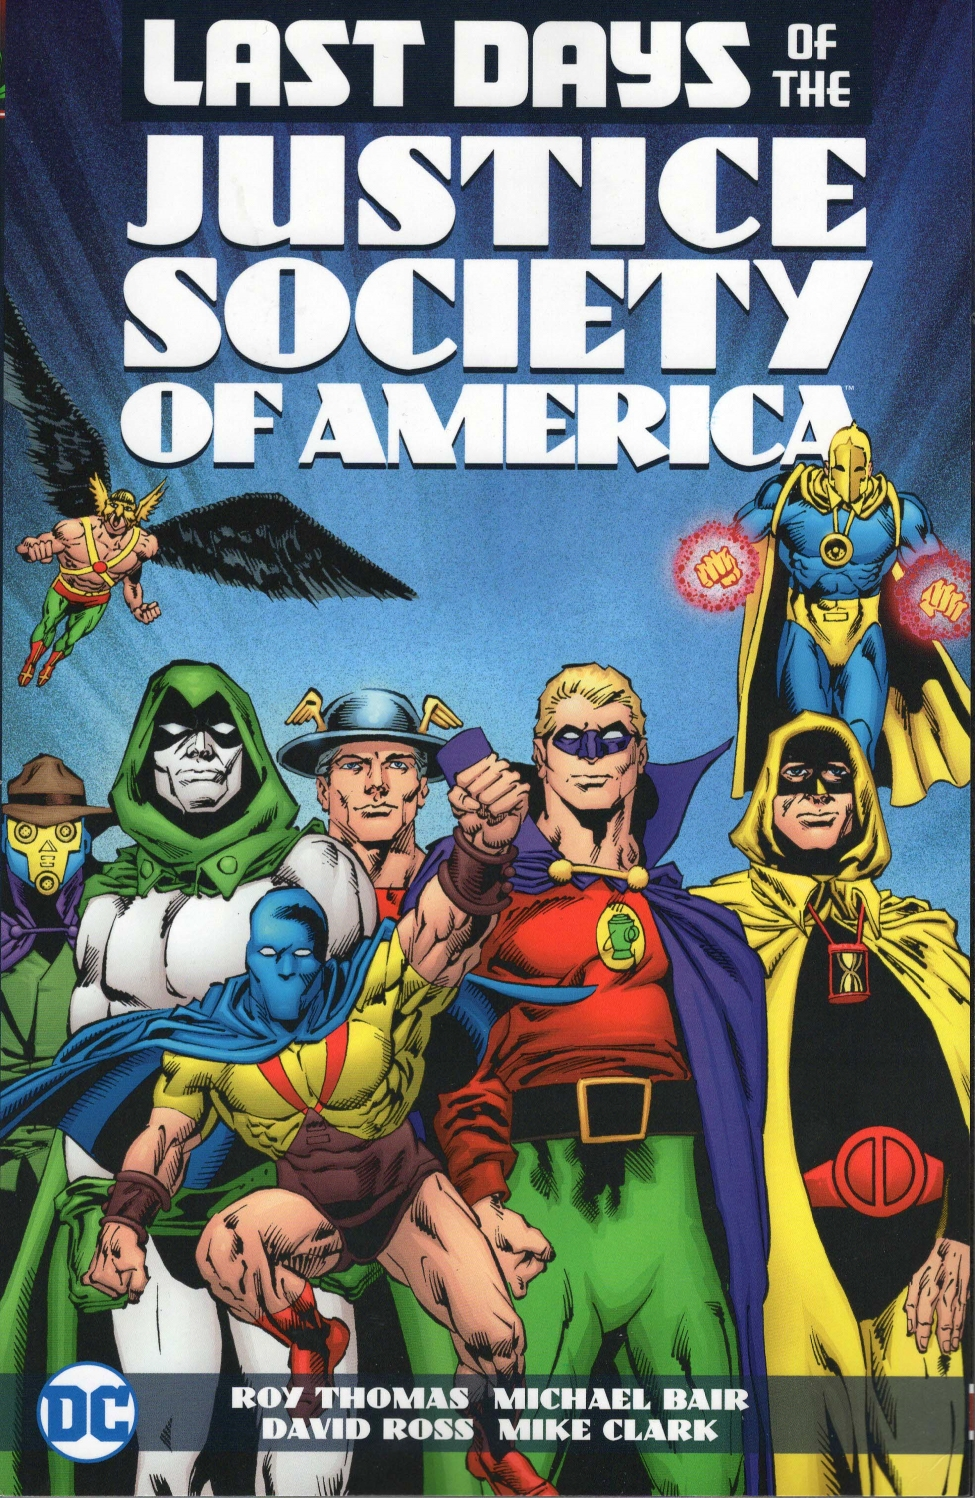 Last Days of the Justice Society of America (Collected)